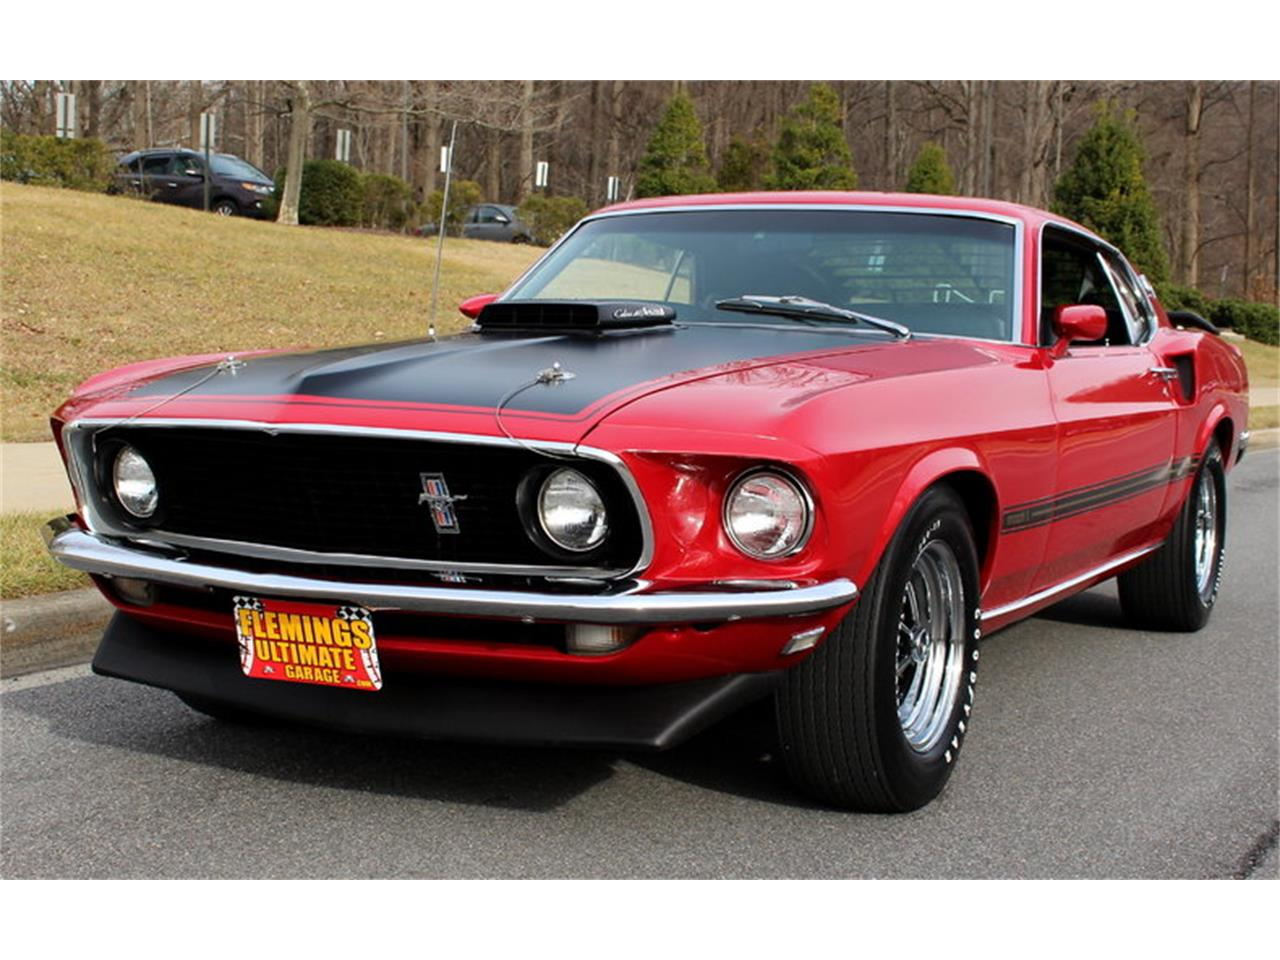 Large picture of classic 69 mustang mach 1 428 cobra jet located in maryland